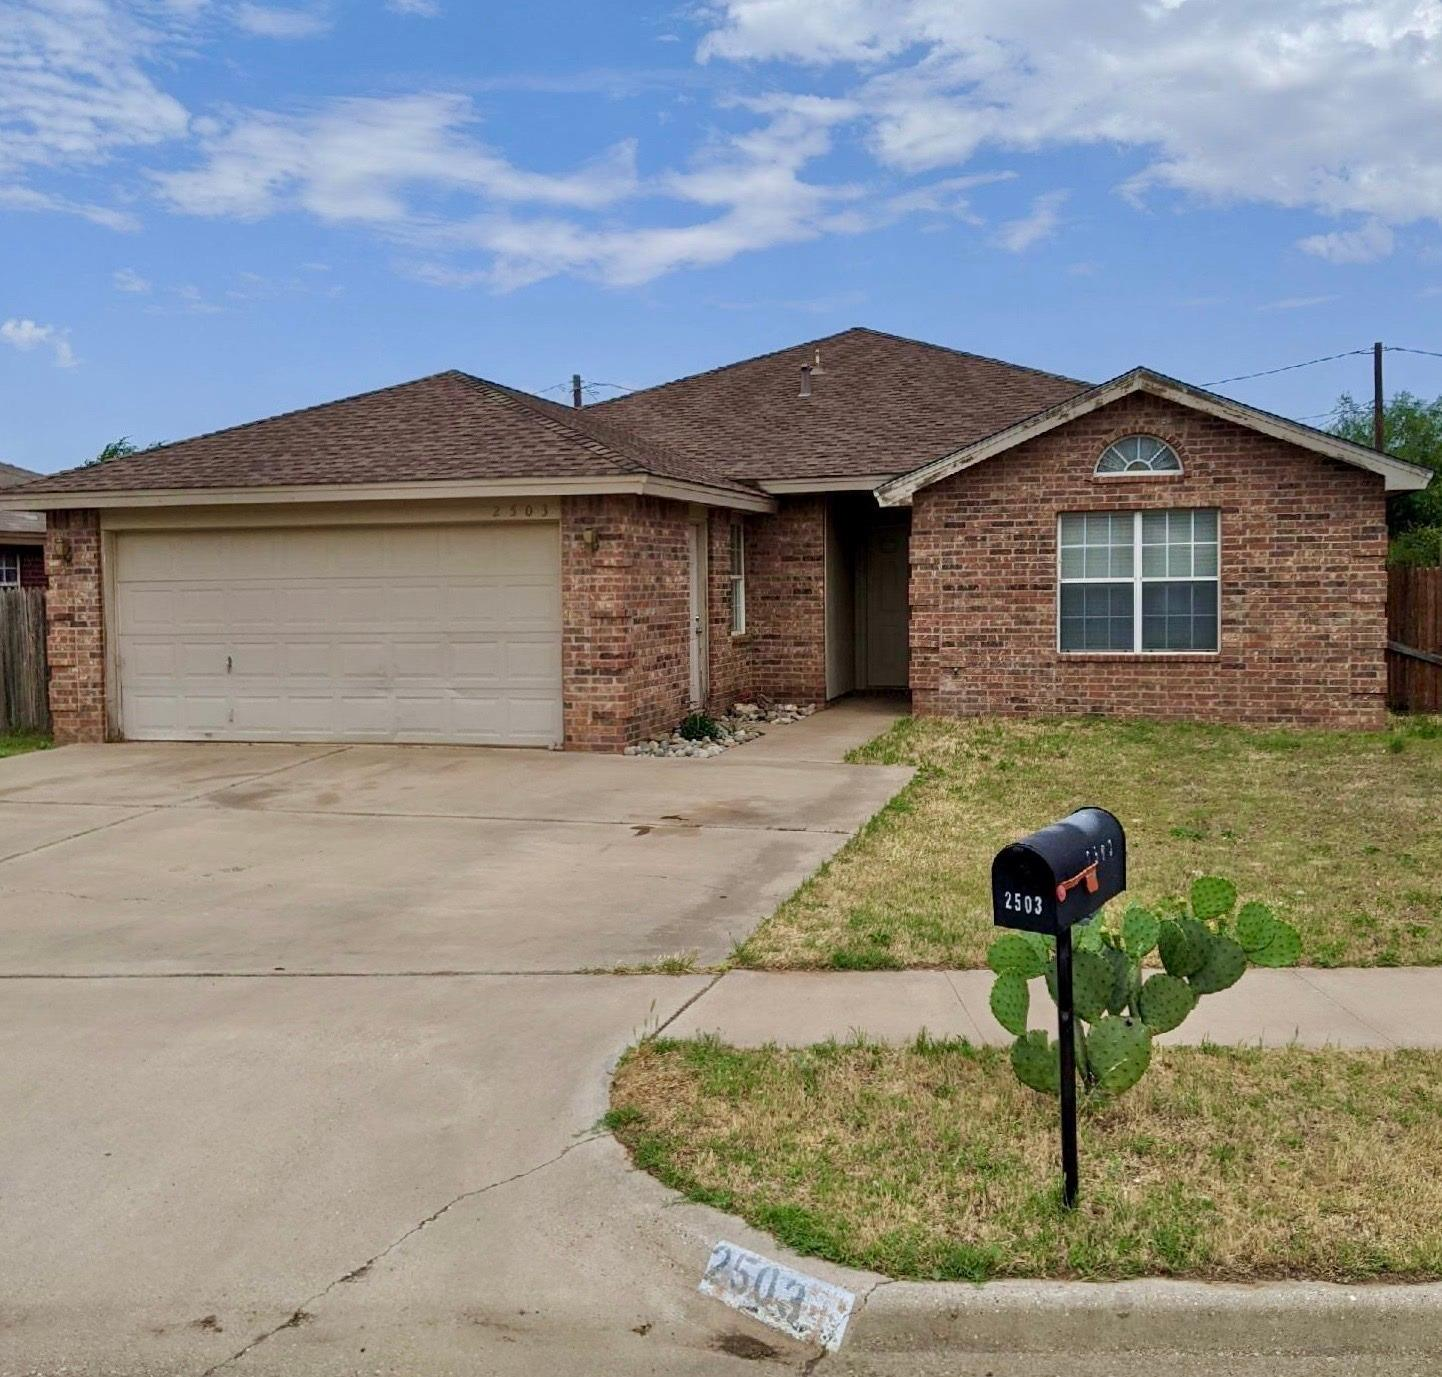 2503 Cypress Street, Lubbock in Lubbock County, TX 79403 Home for Sale